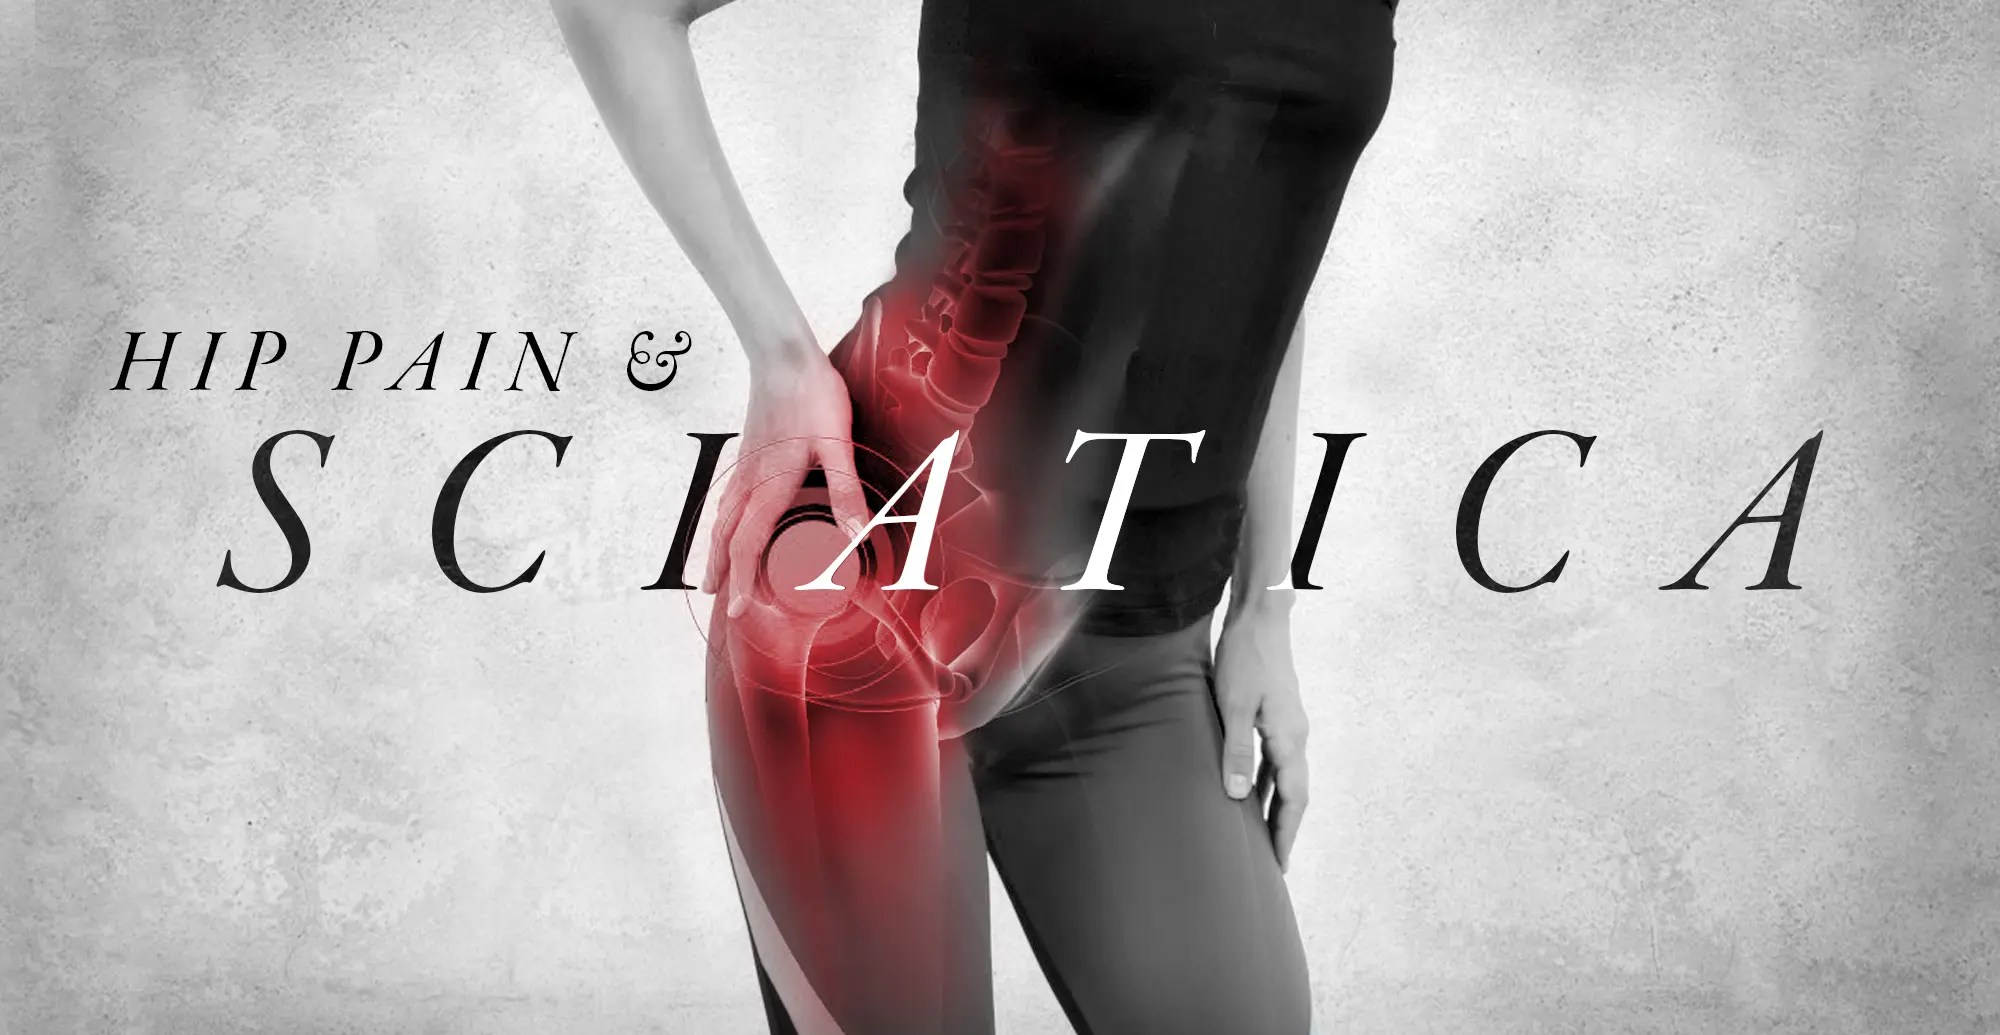 Hip Pain and Sciatica